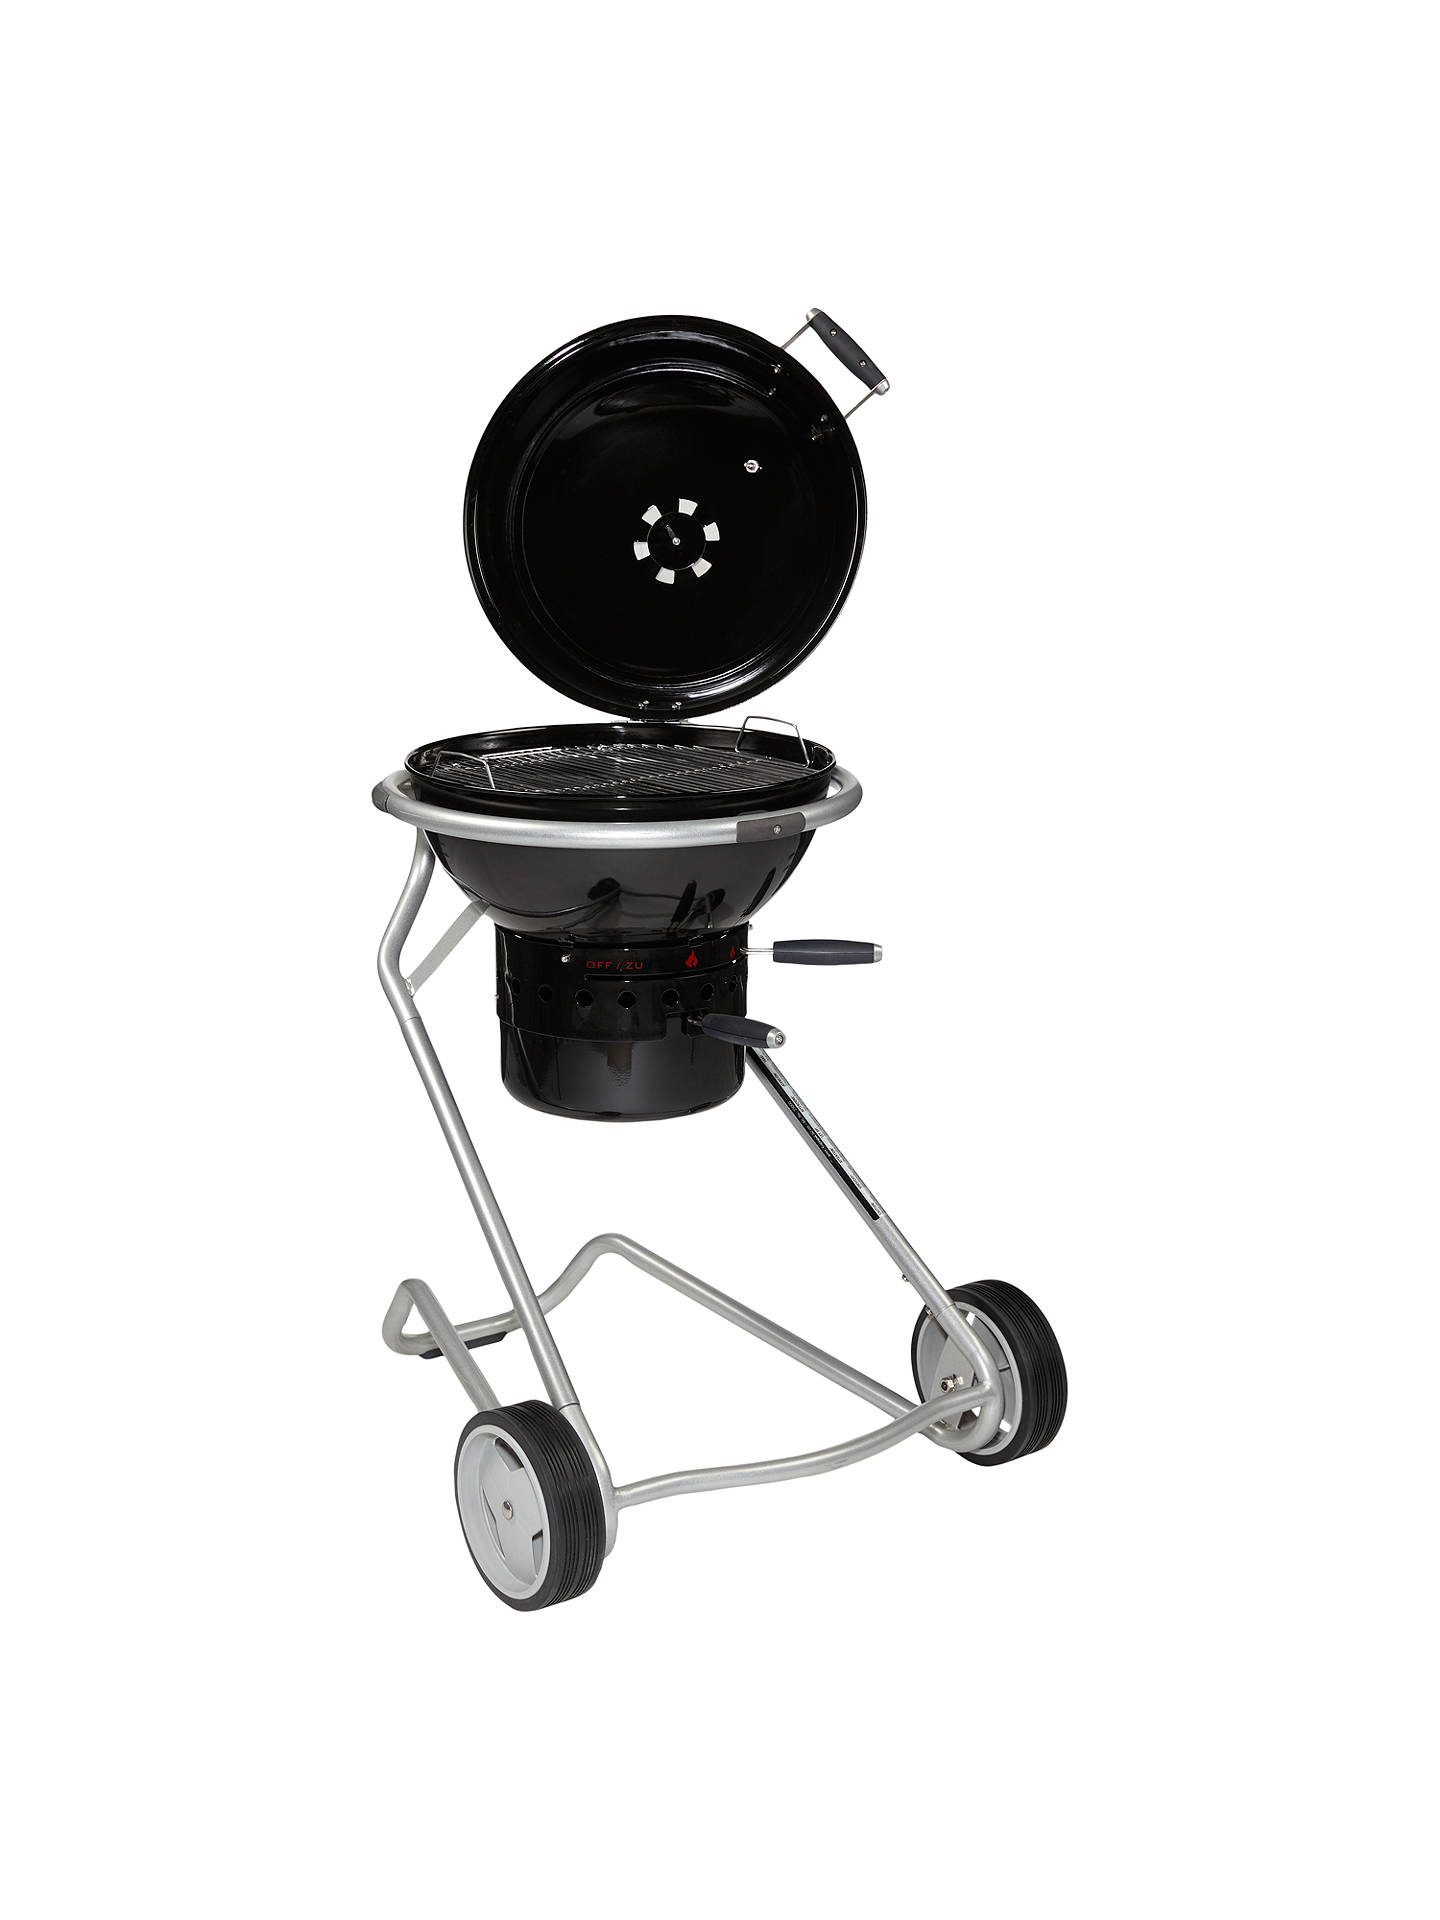 BuyJohn Lewis & Partners Luxury Kettle Charcoal BBQ, Black, 50cm Online at johnlewis.com